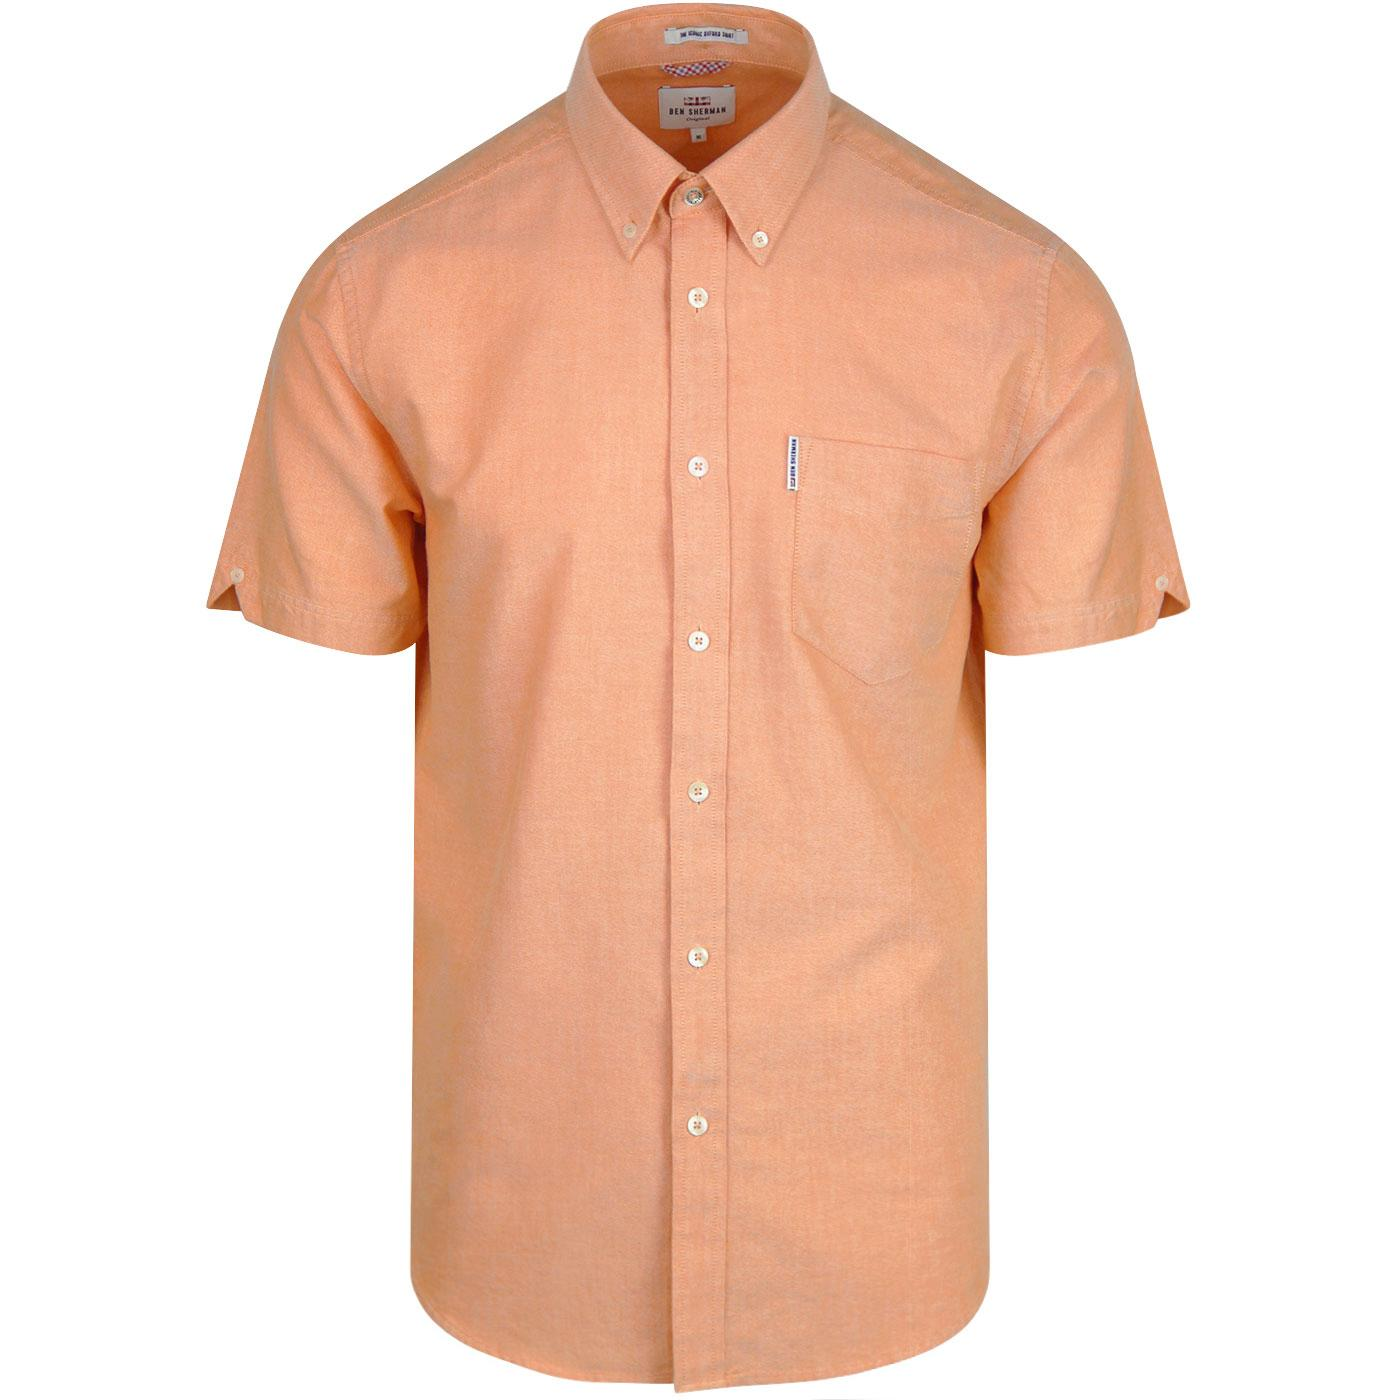 Ben Sherman SS Core Oxford Shirt Camisa Casual para Hombre